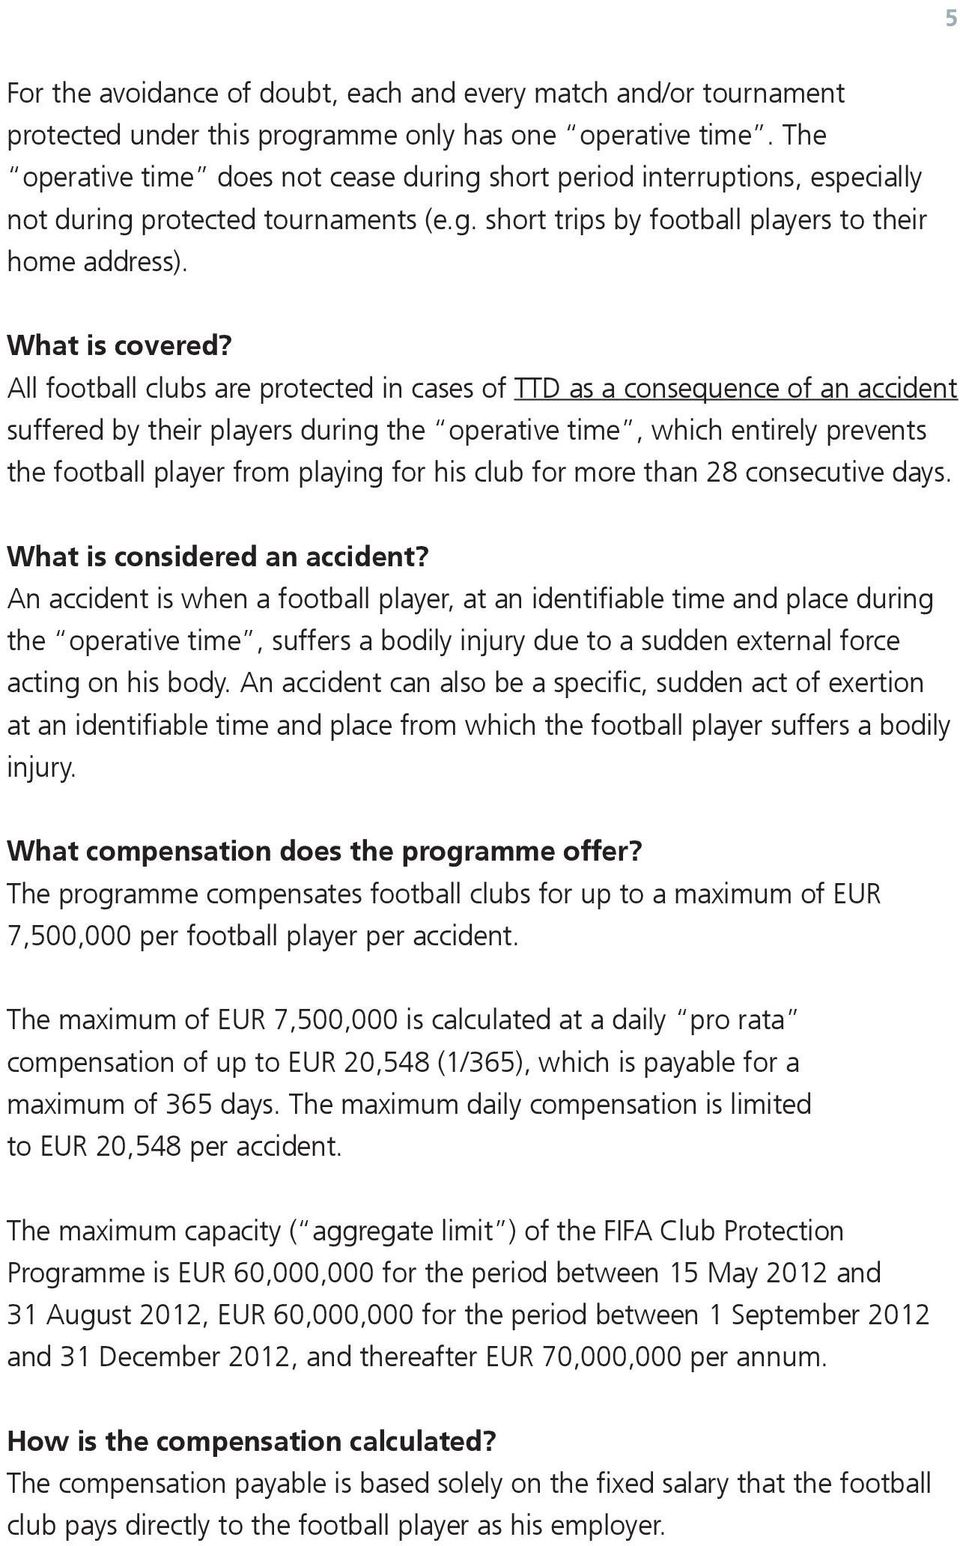 All football clubs are protected in cases TTD as a consequence an accident suffered by ir players during operative time, which entirely prevents football player from playing for his club for more